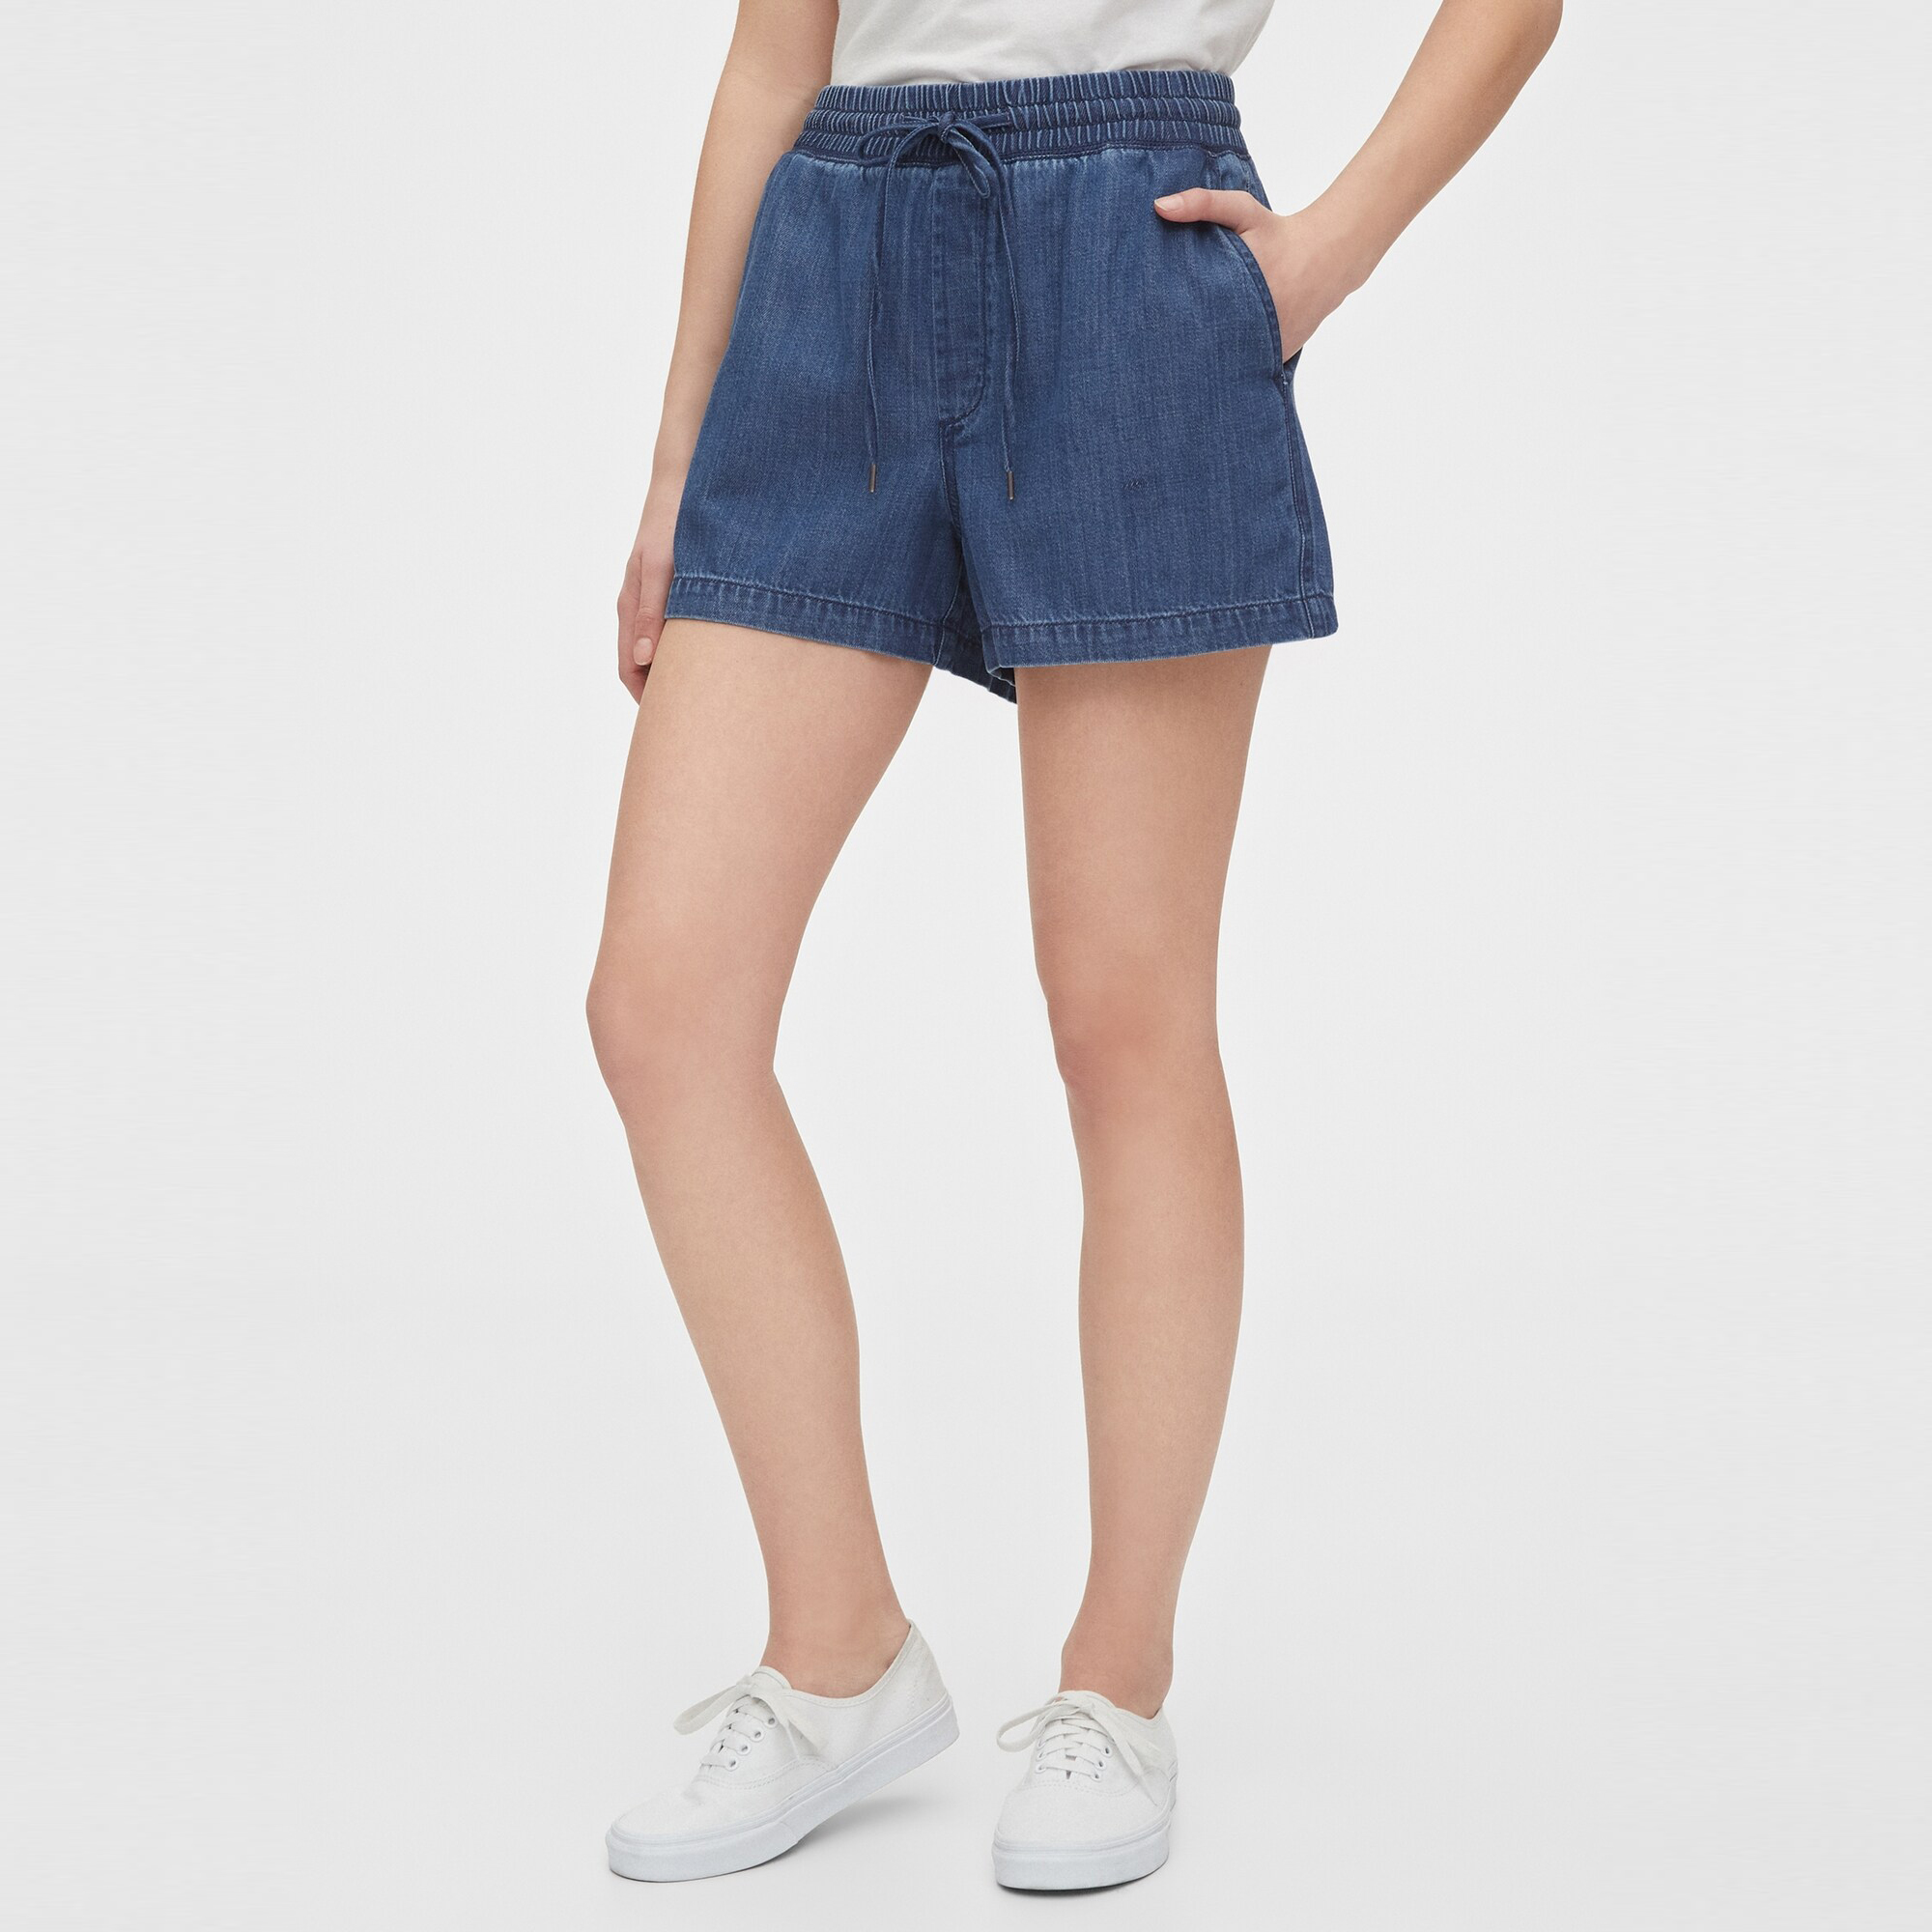 GAP Textil Shorts Indigo Twill Shorts - Medium Indigo 543325-827